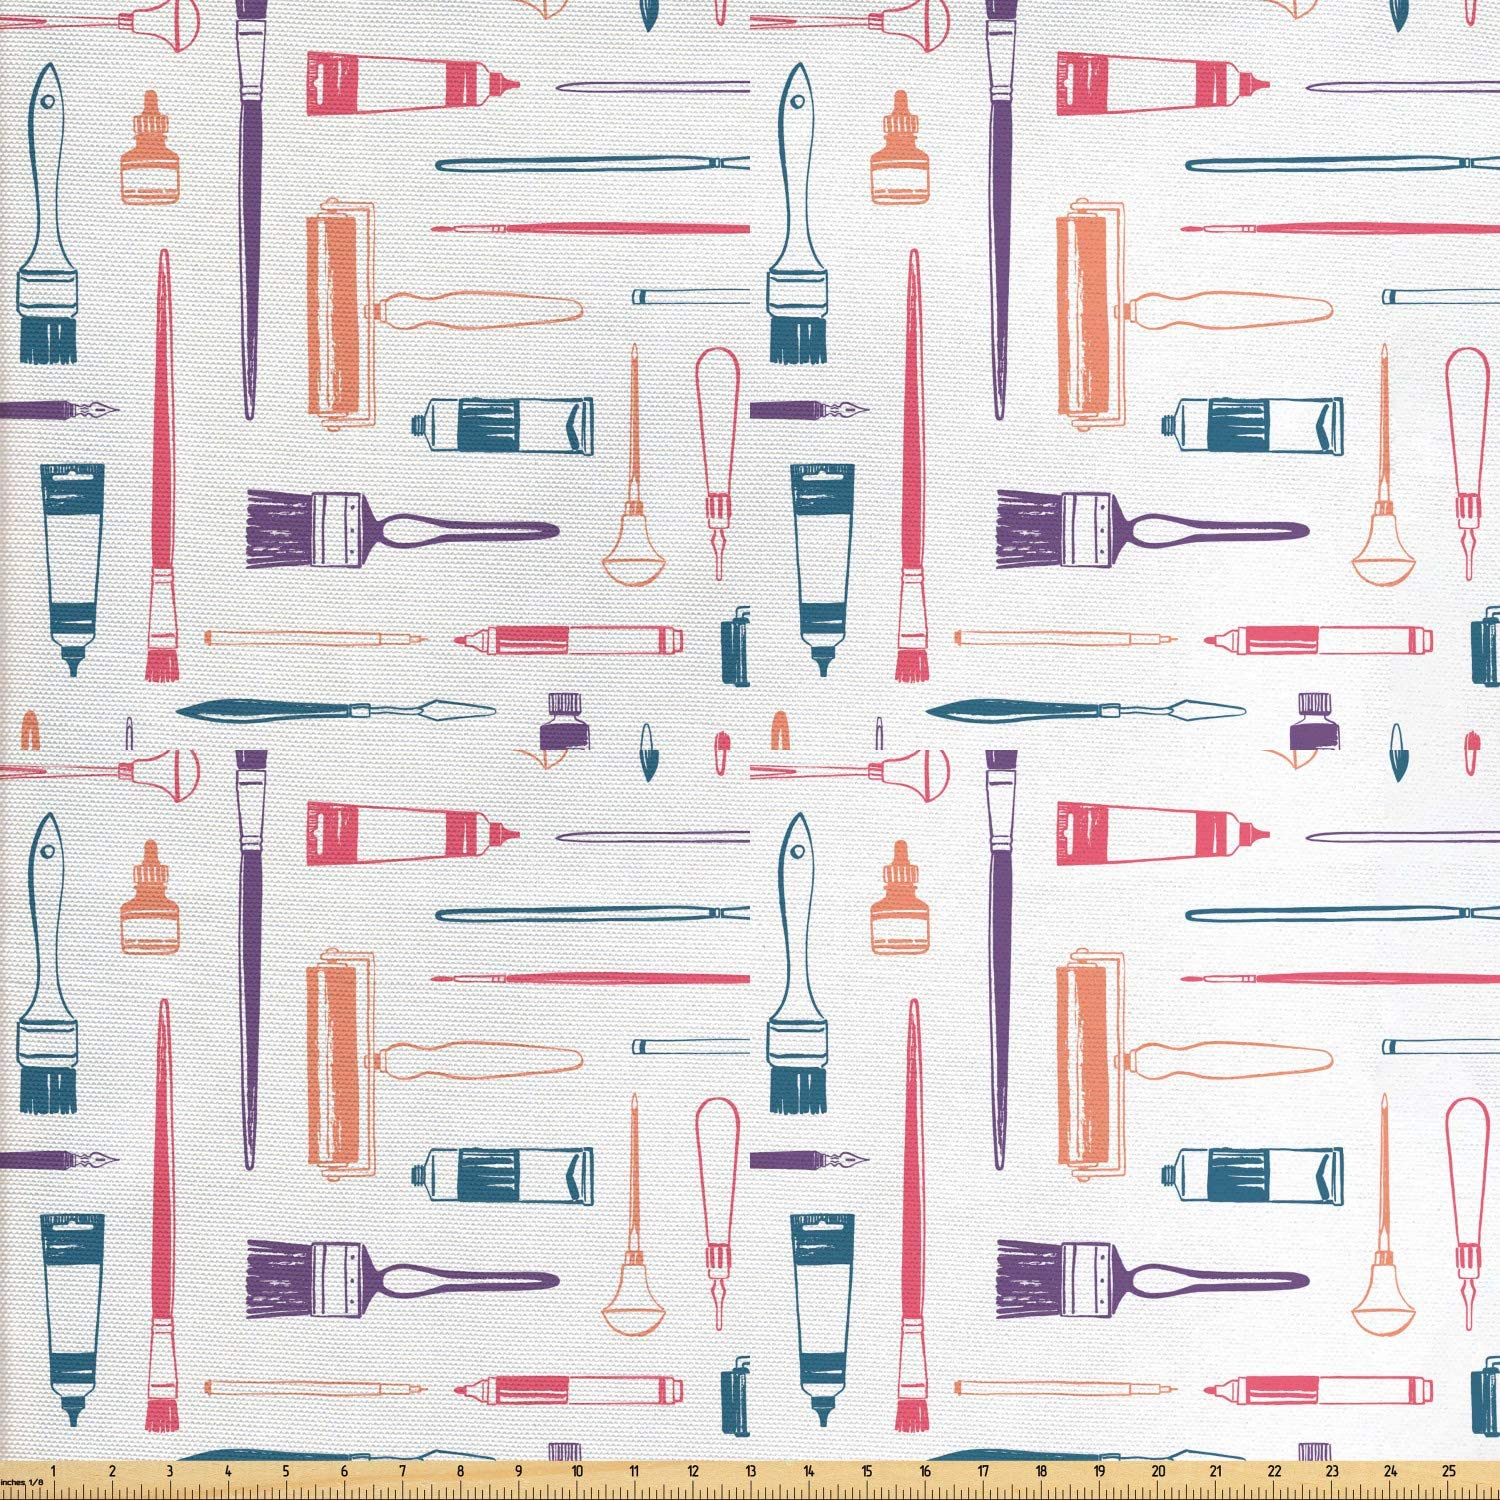 Ambesonne Hobby Fabric by The Yard, Painting Equipment in Outline Style Art Supplies Pattern Tubes and Brushes, Decorative Fabric for Upholstery and Home Accents, 1 Yard, Multicolor